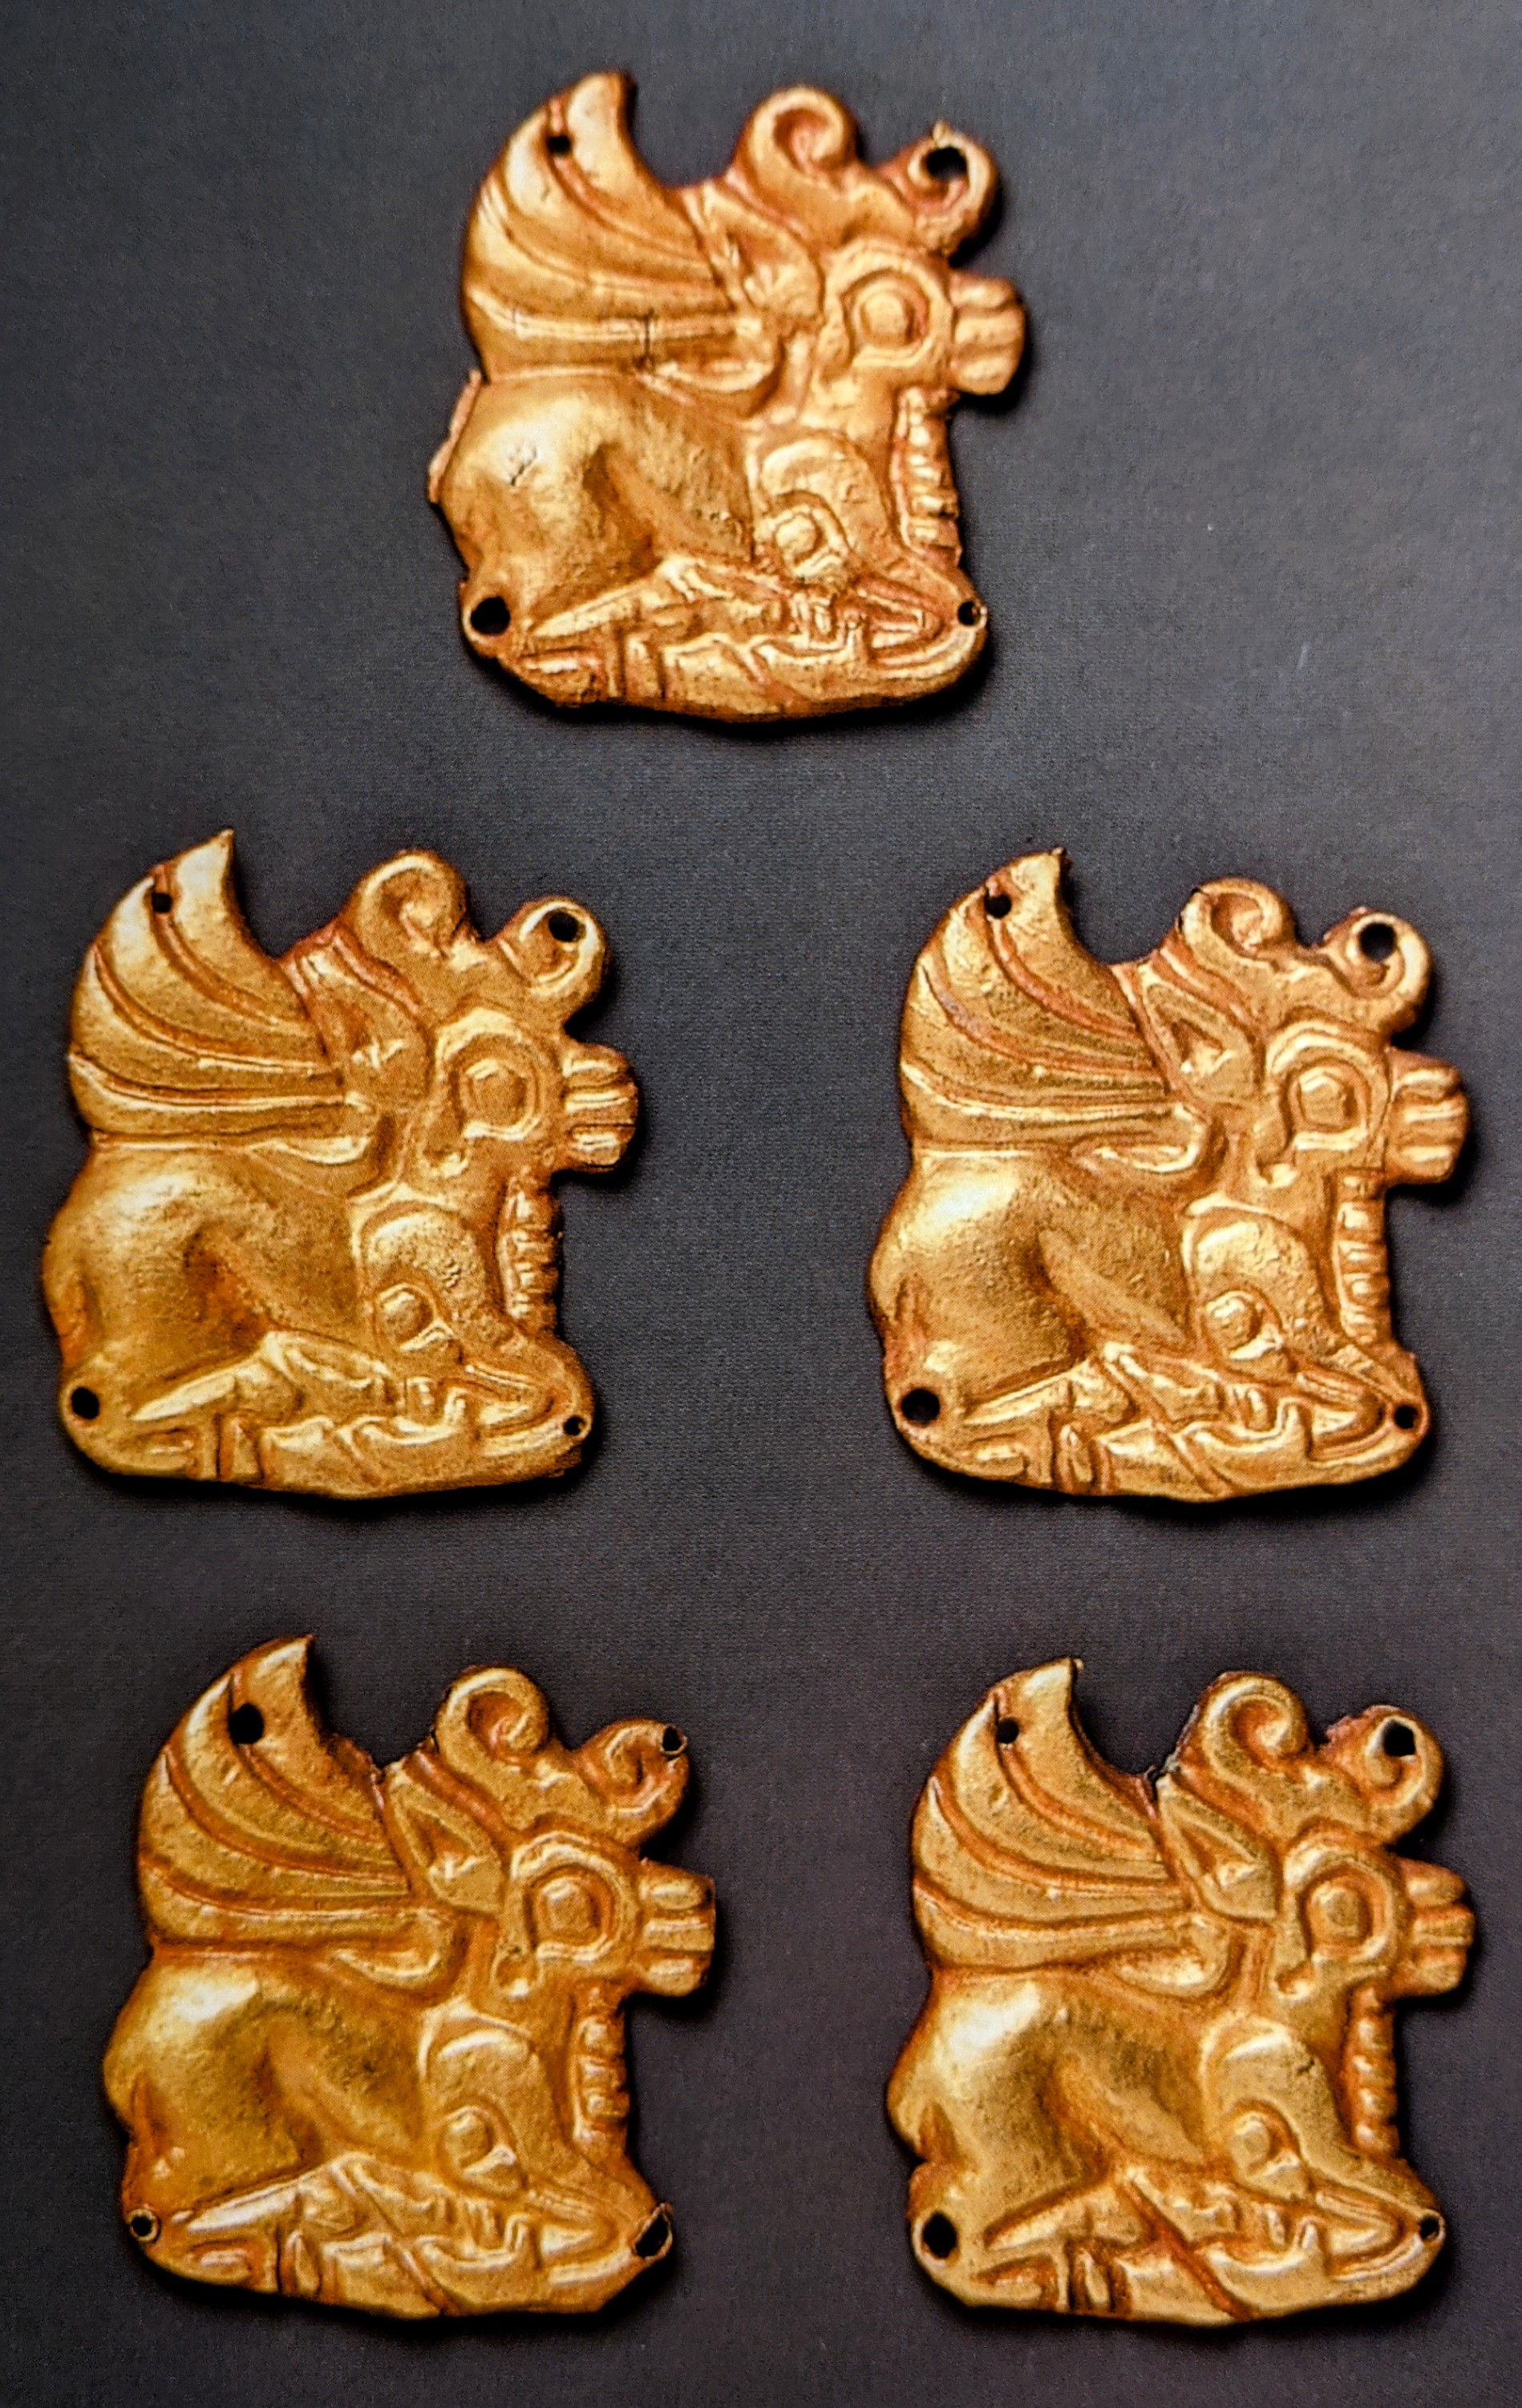 Stag shaped gold applique plaques